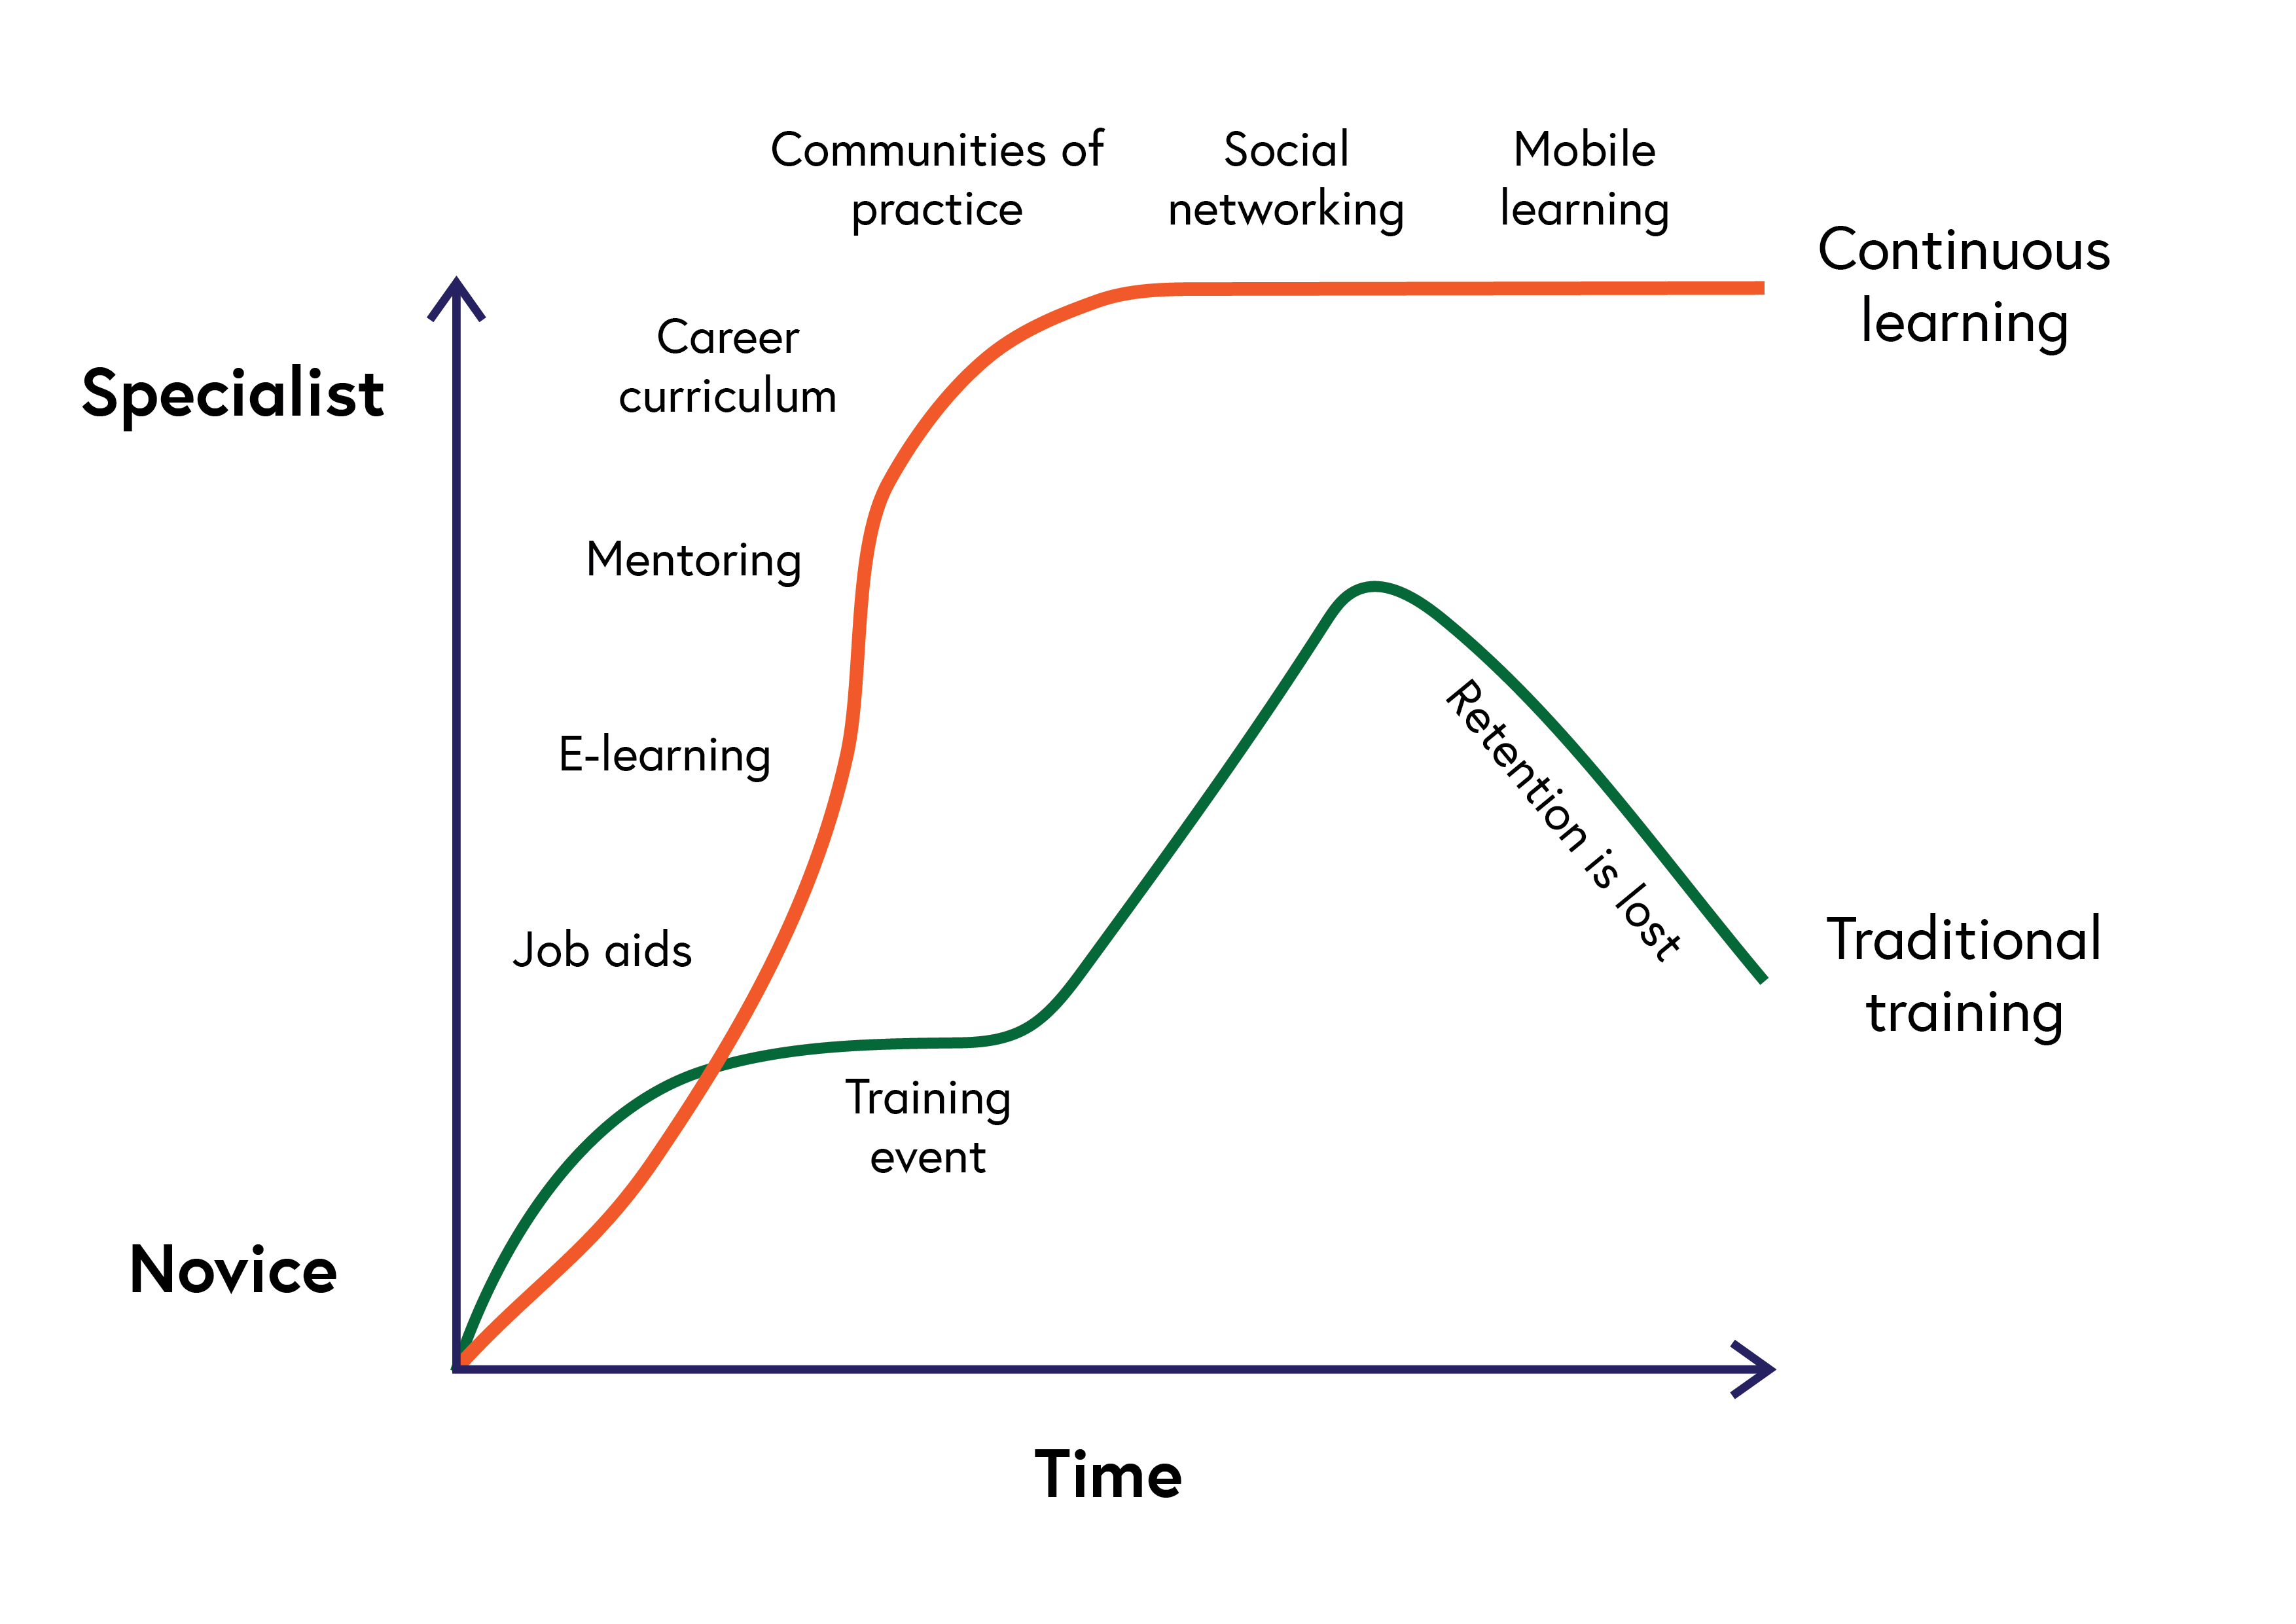 Graph describing improved retention from continuous learning rather than a traditional single training event where initial retention is lost because of a lack of post event support.